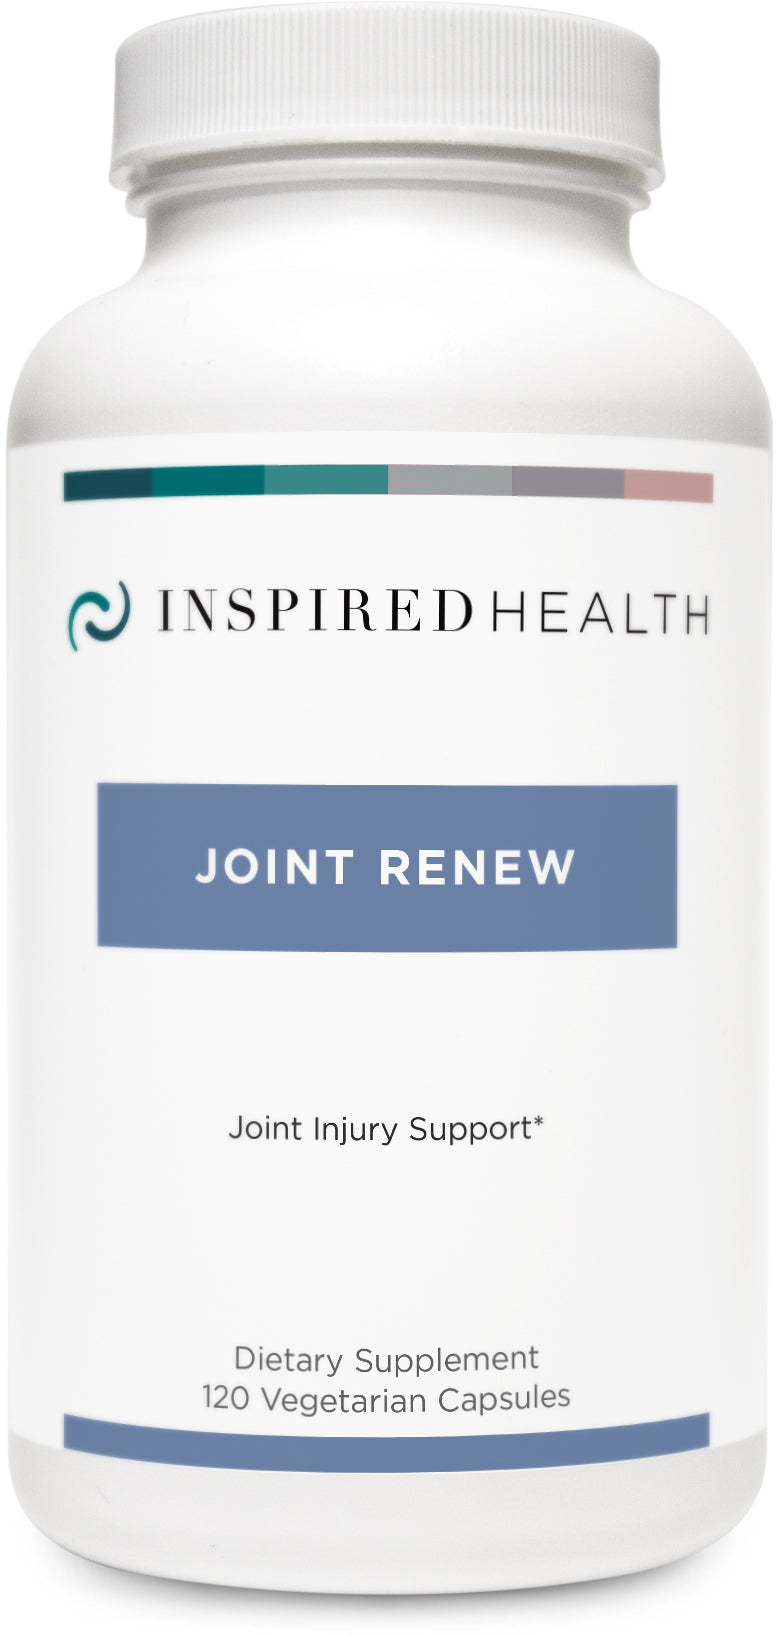 Joint ReNew - Inspired Health Apothecary